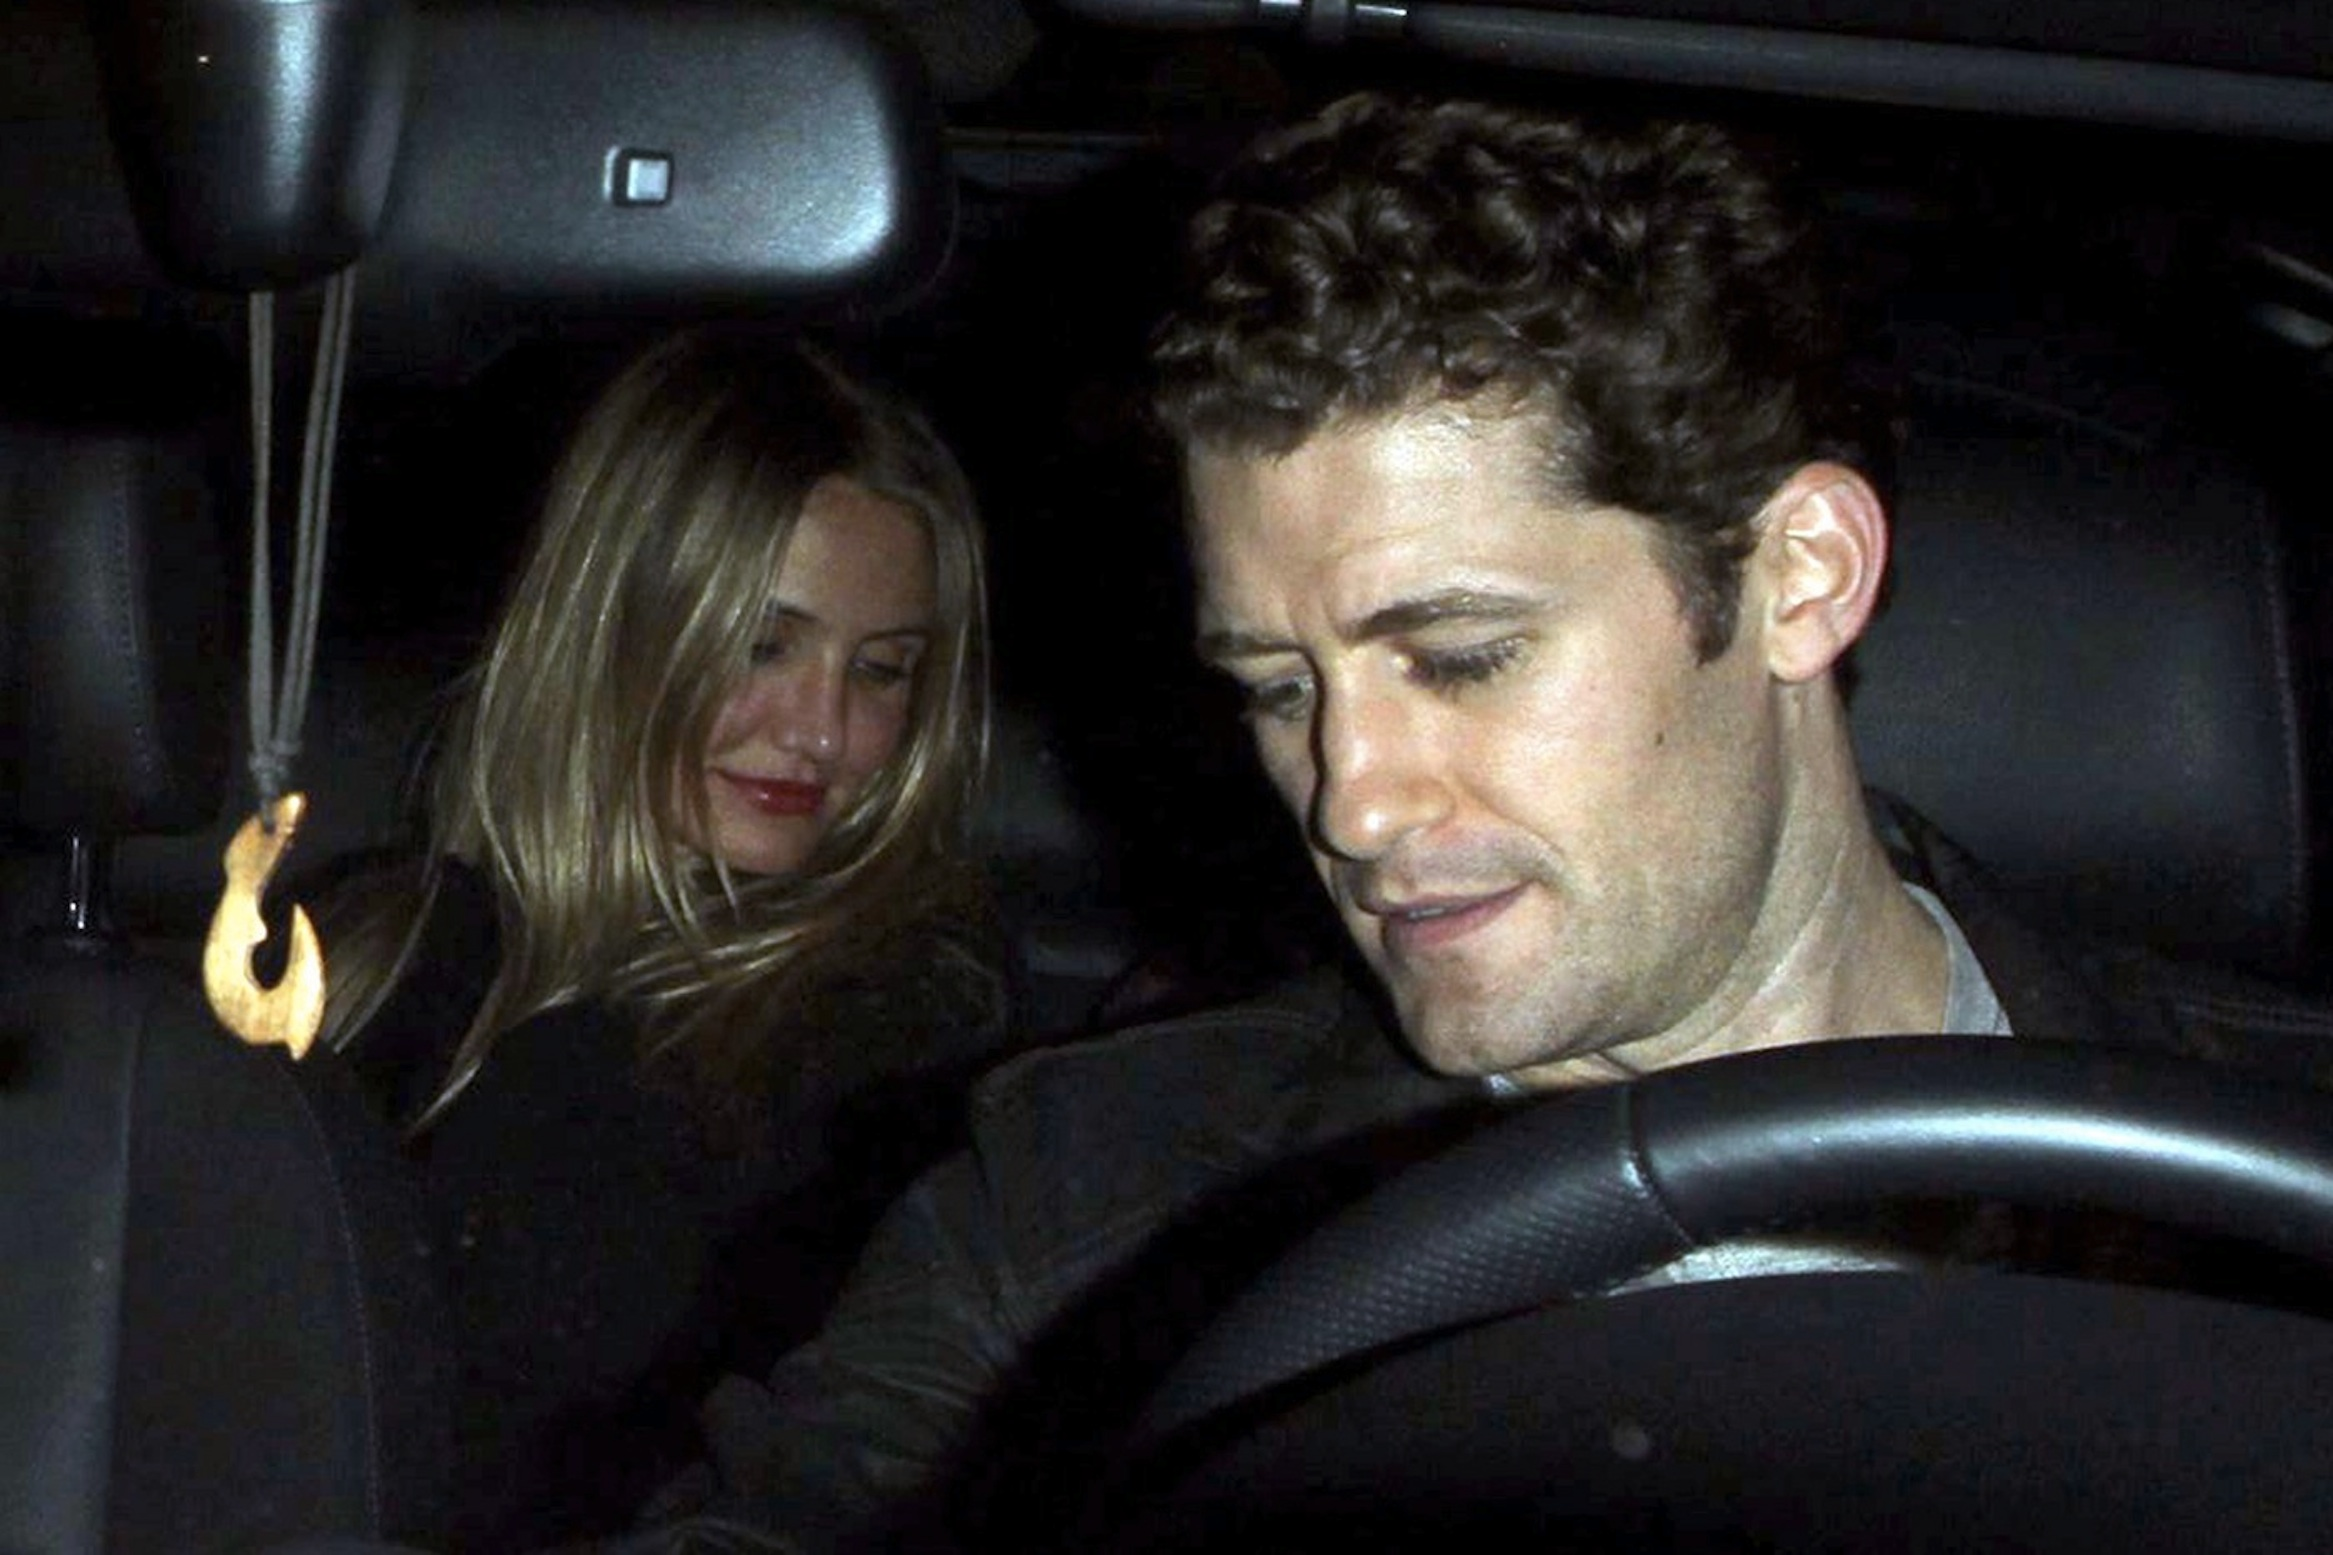 New couple alert?? Cameron Diaz enjoys a Gleeful night on the town with Matthew Morrison!